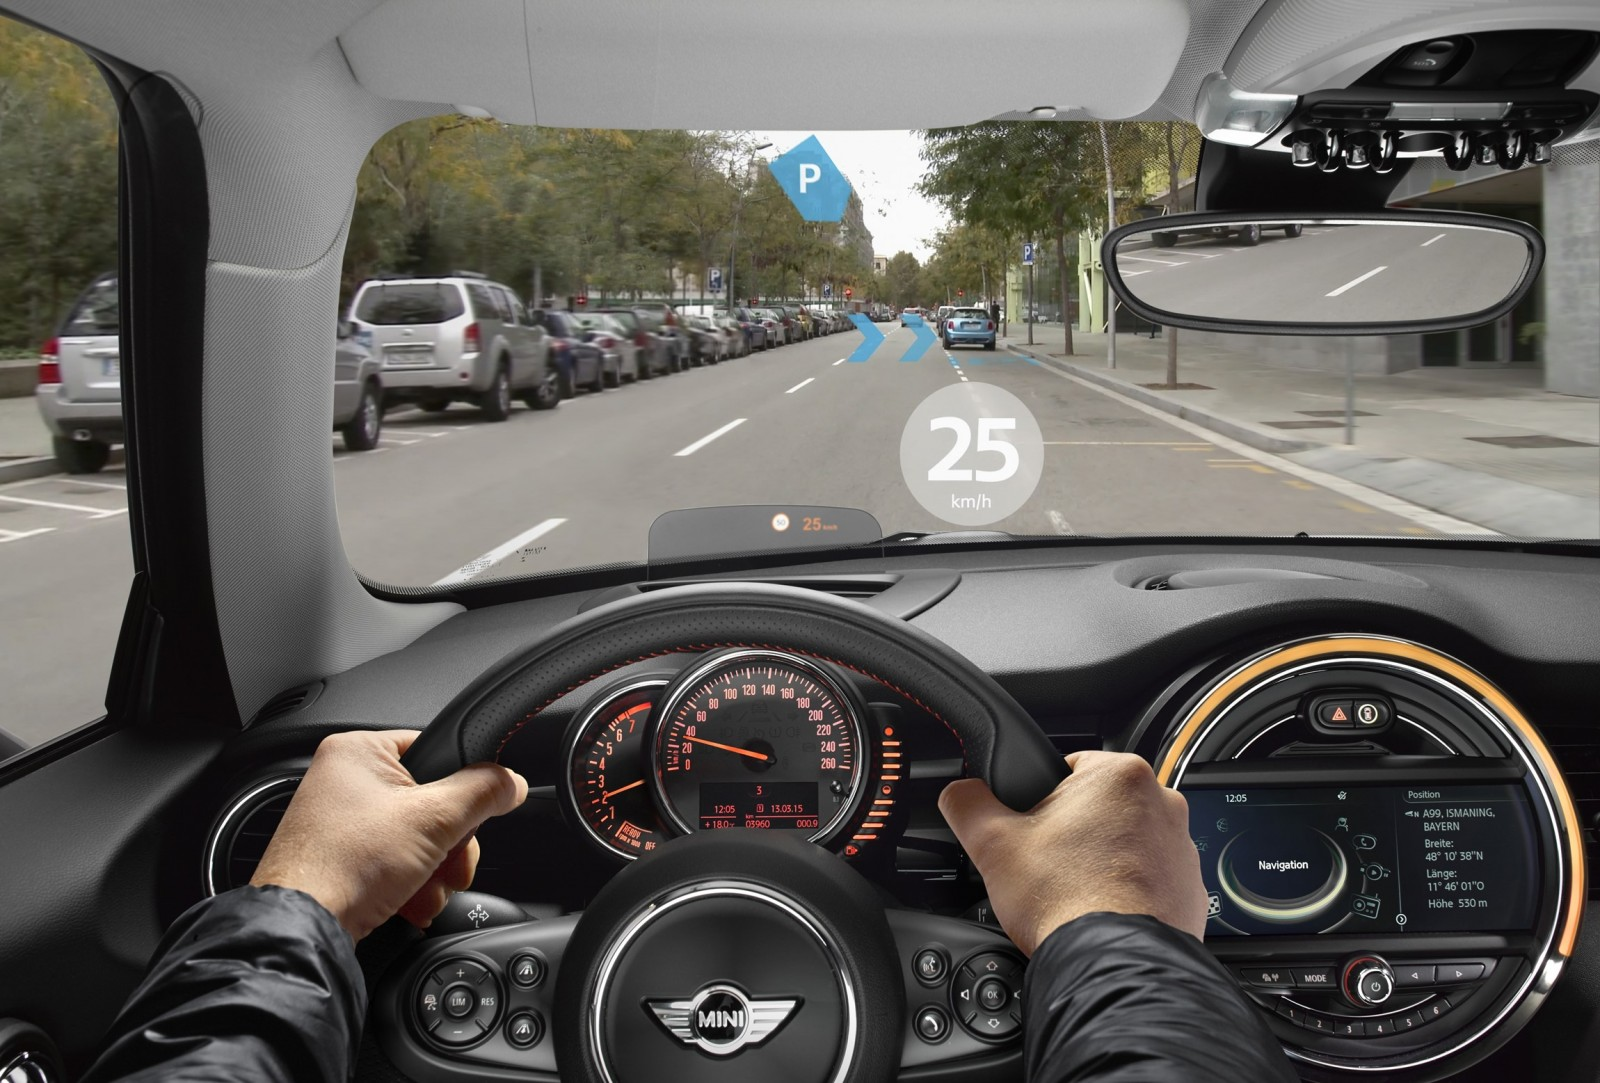 MINI Reveals New Augmented Vision Goggle Concept 10